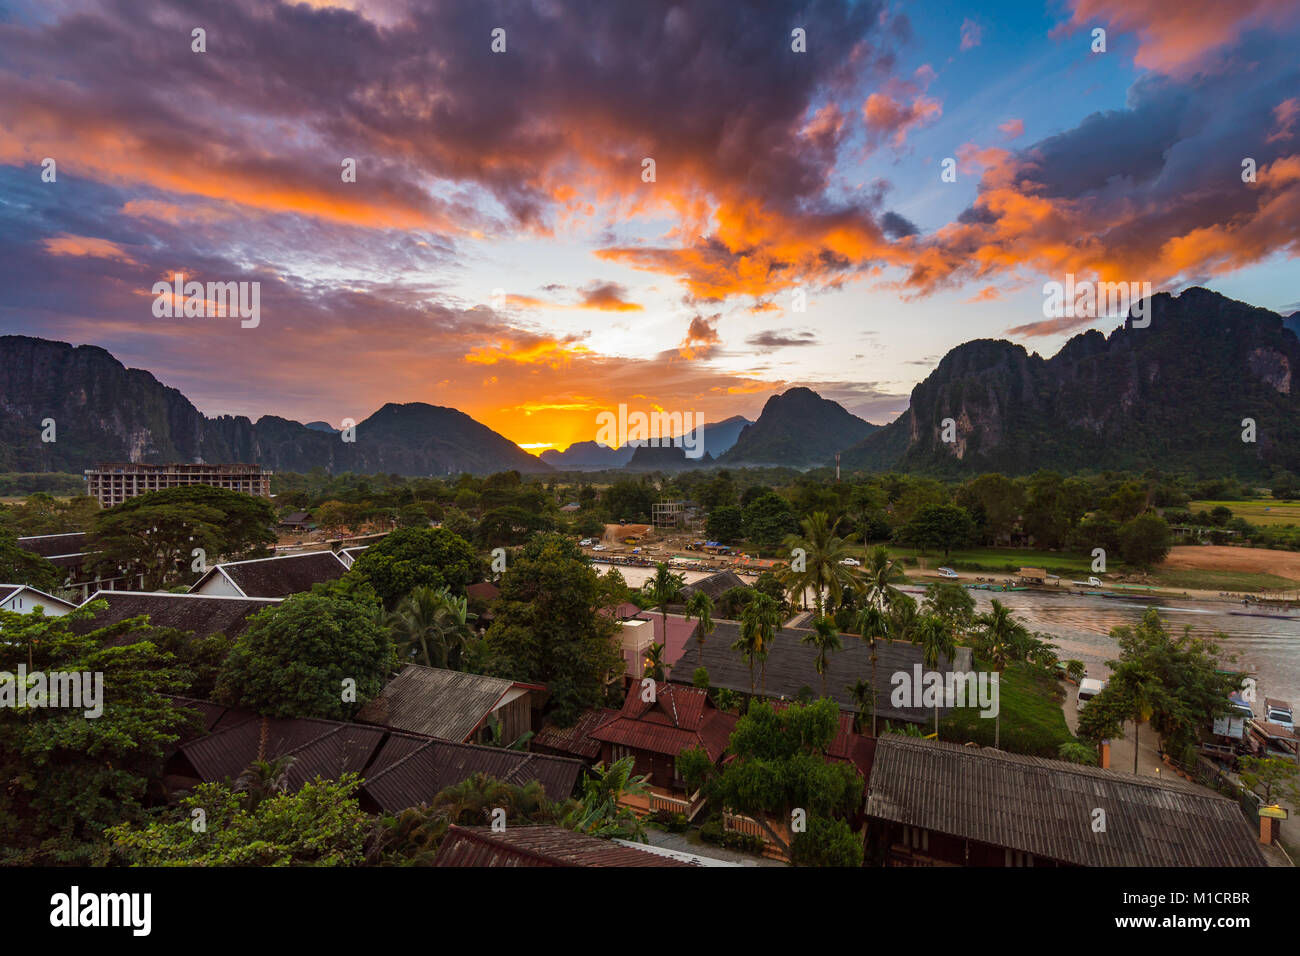 Landscape Viewpoint and beautiful sunset at Vang Vieng, Laos. - Stock Image